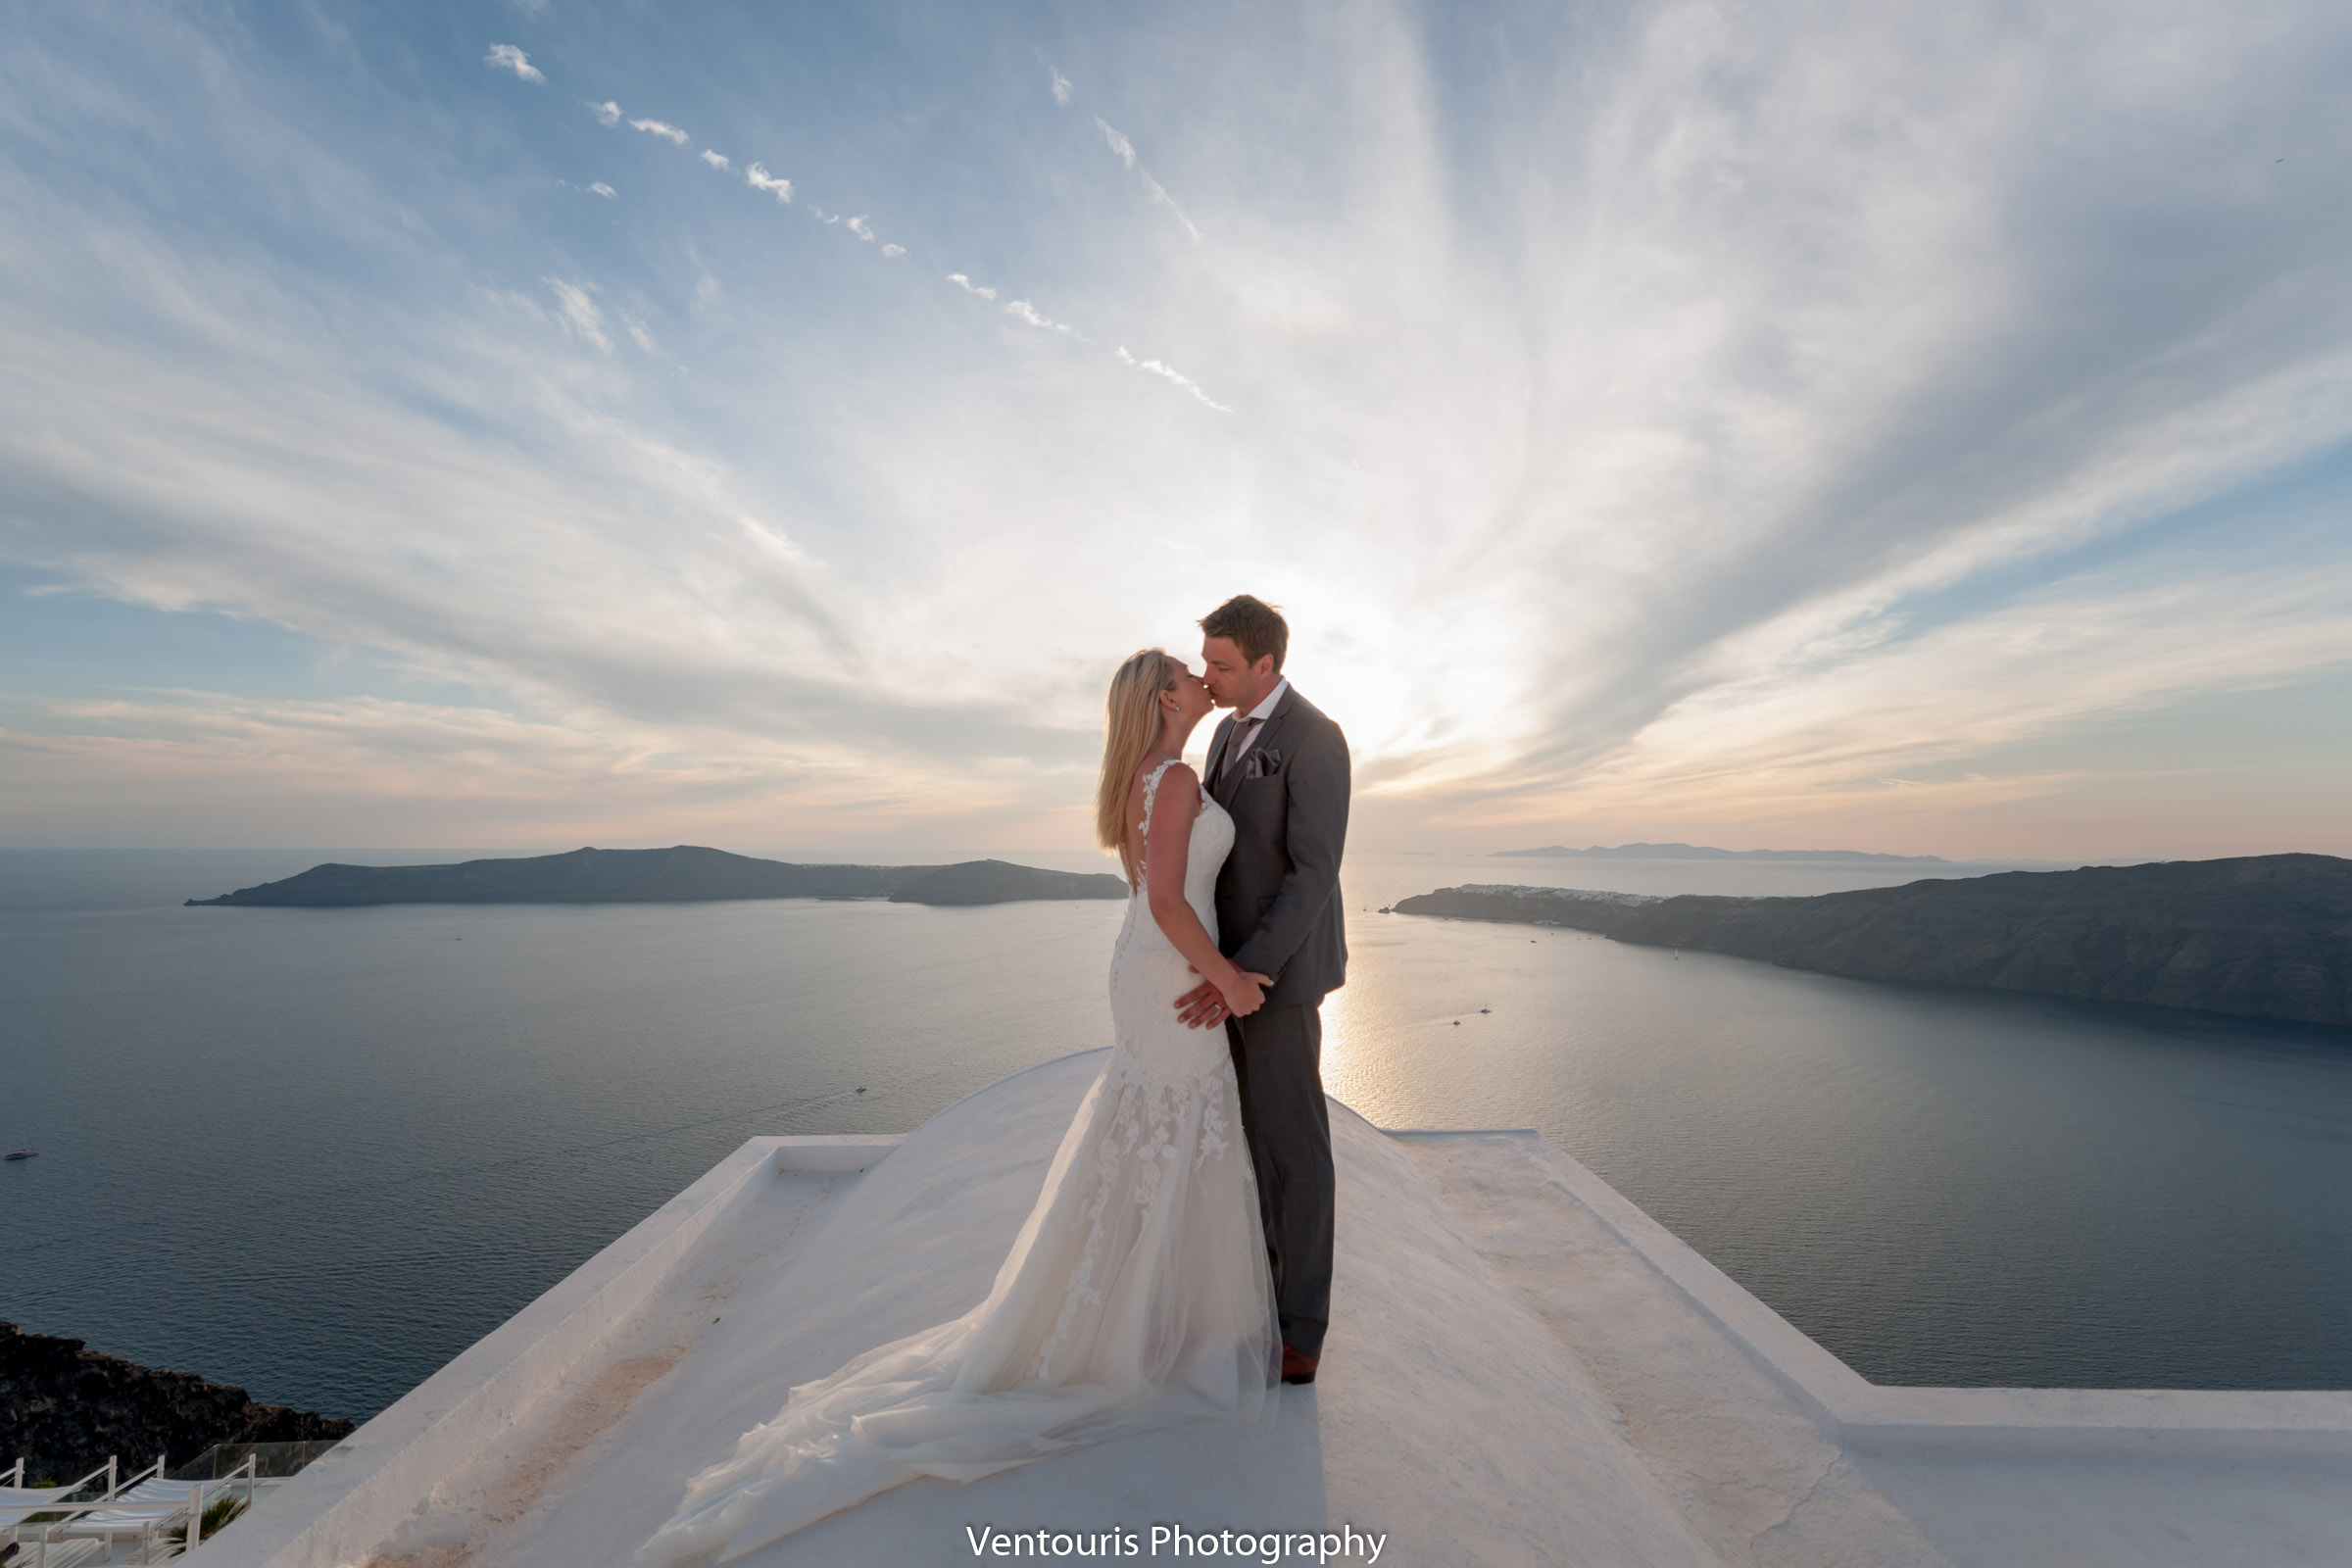 Mark's and Ceciley's wedding in Santorini island